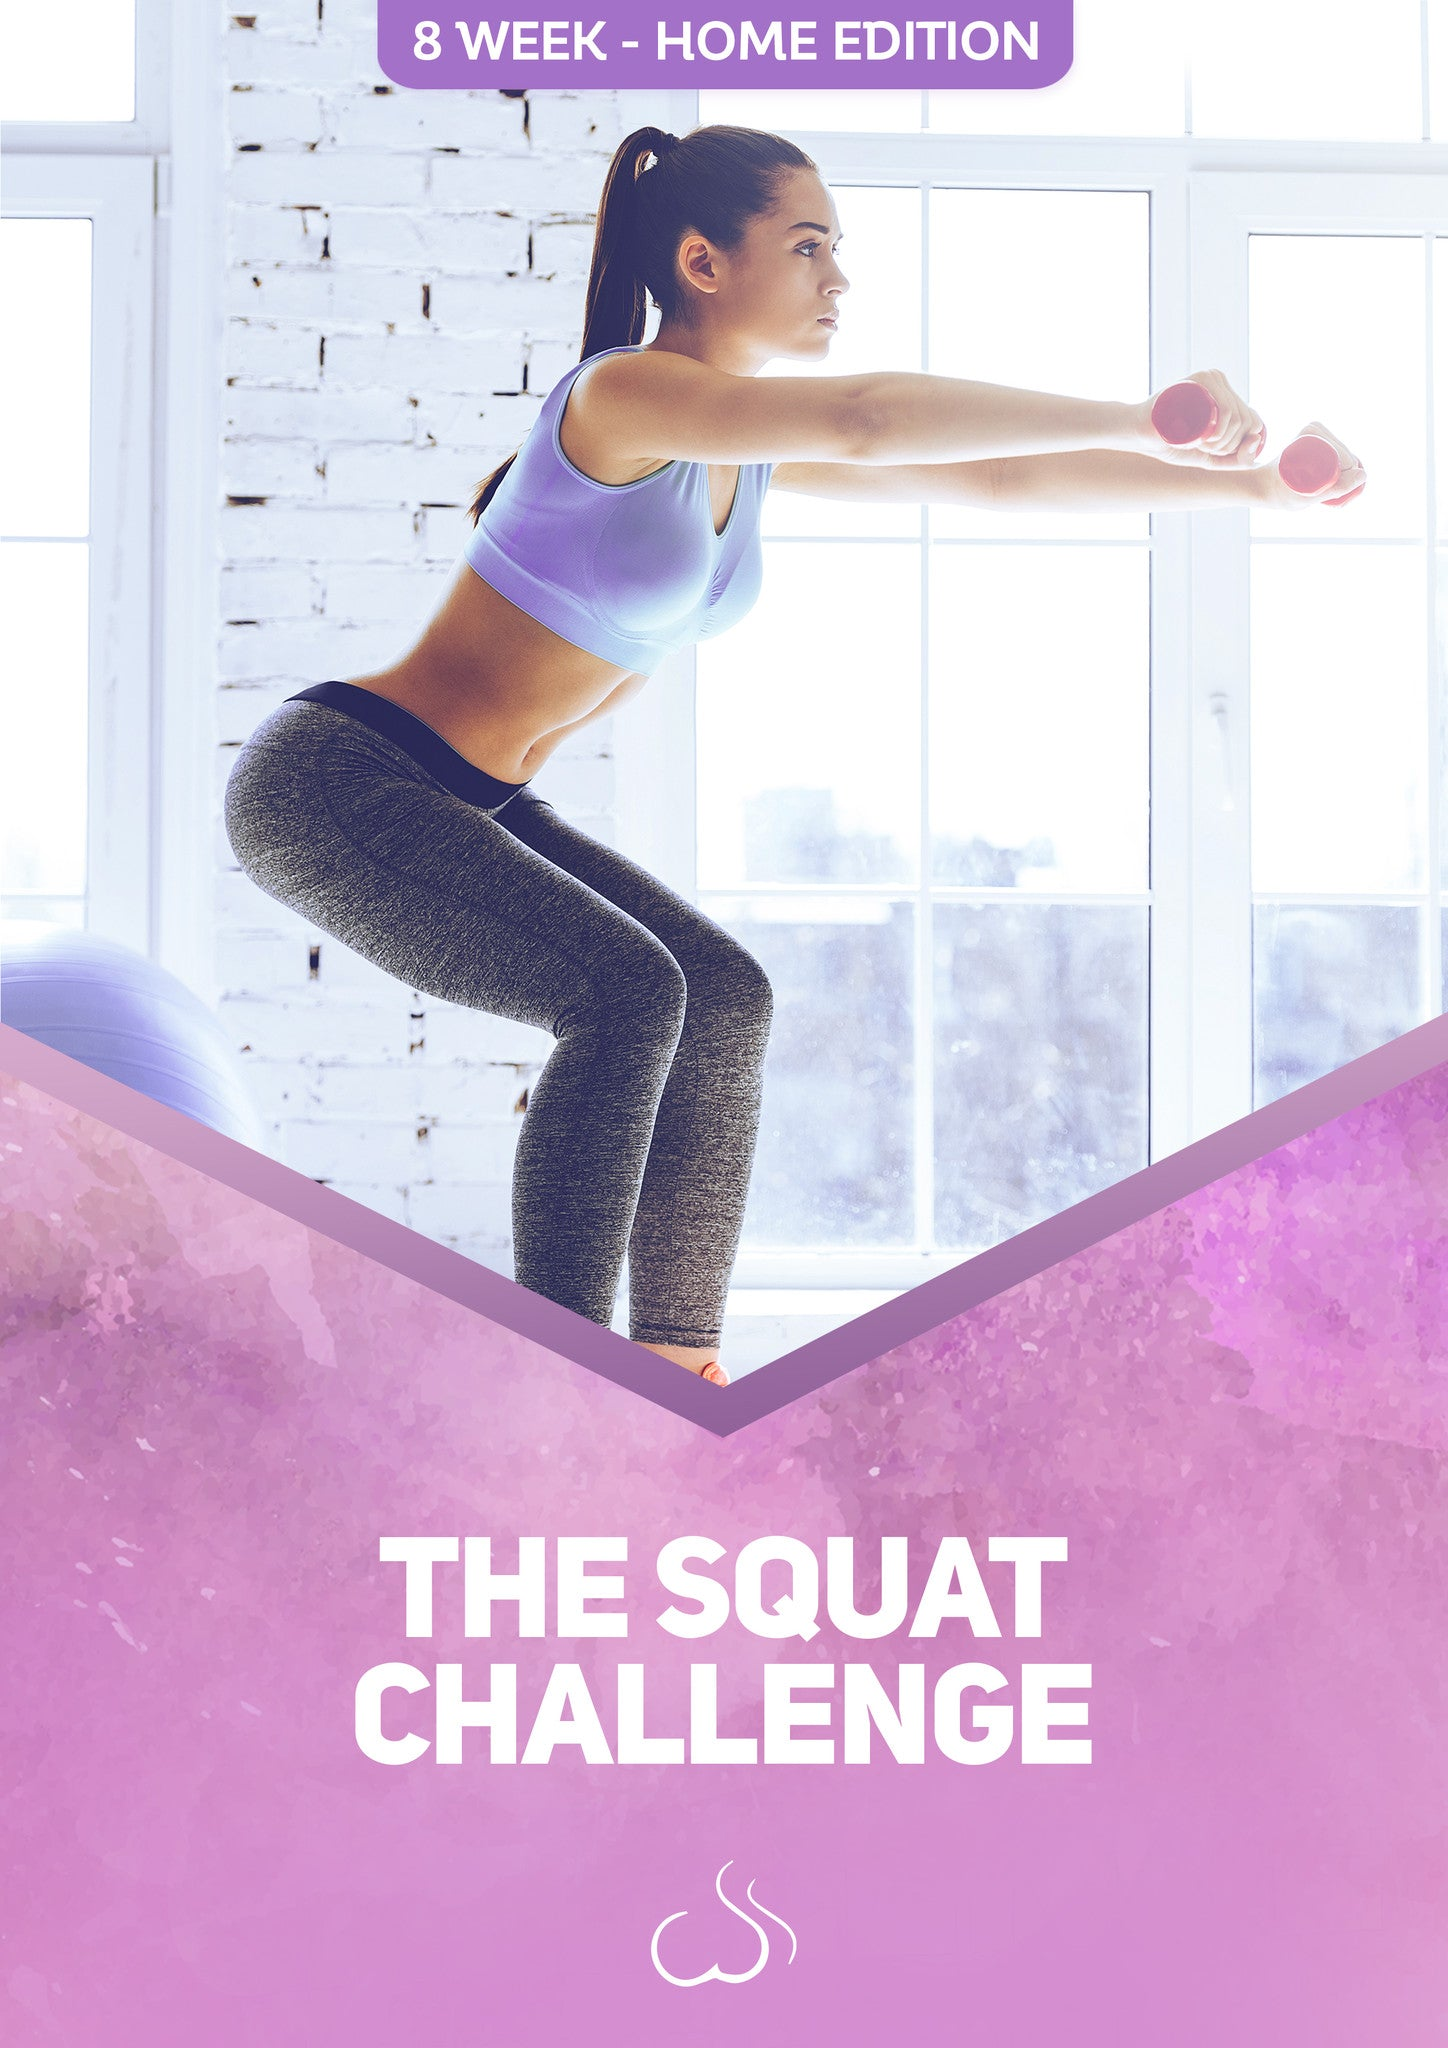 THE SQUAT CHALLENGE 8 weeks - Home edition 2.1